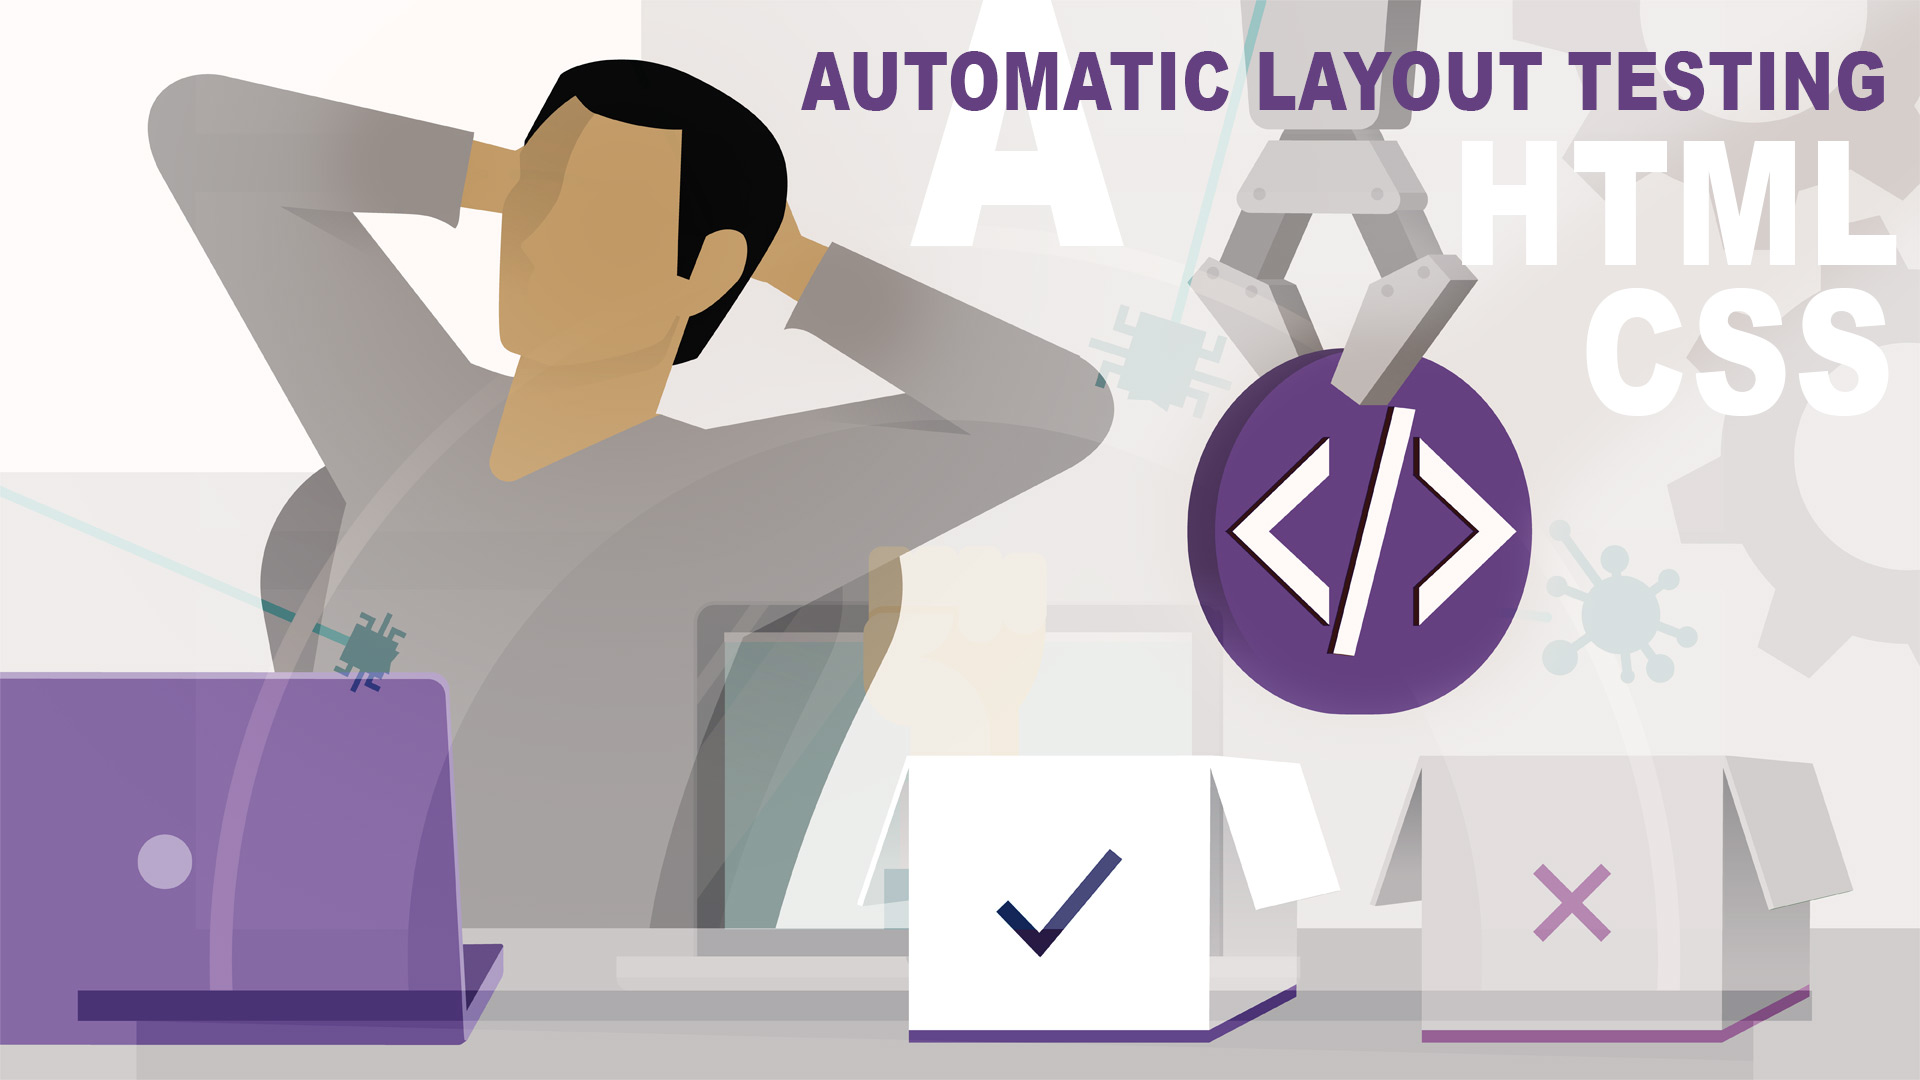 Automatic layout testing in Frontend